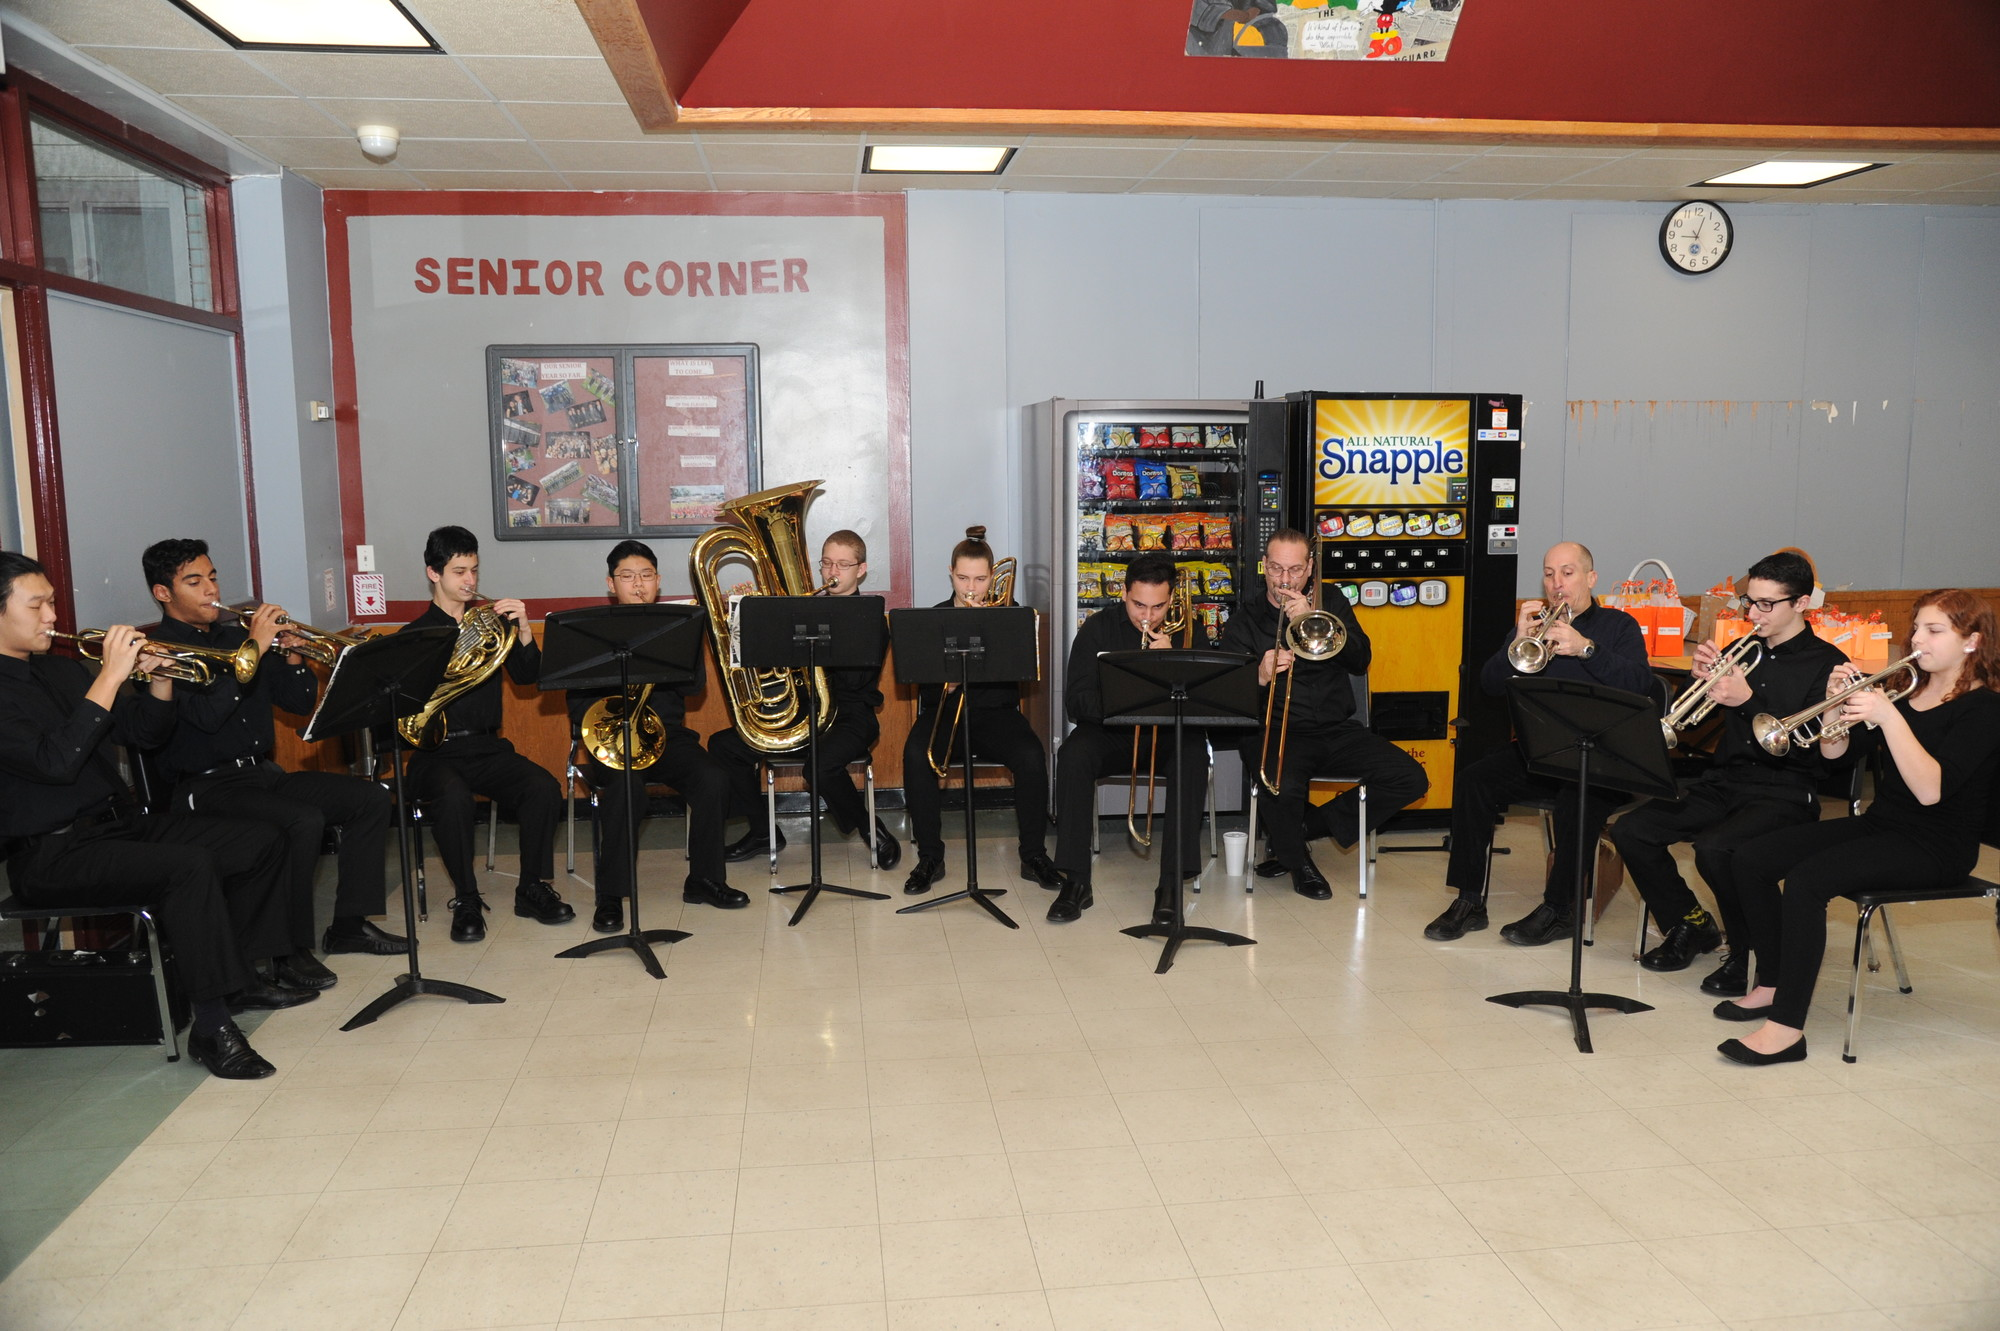 Clarke's brass ensemble entertained the crowd before the contest began.